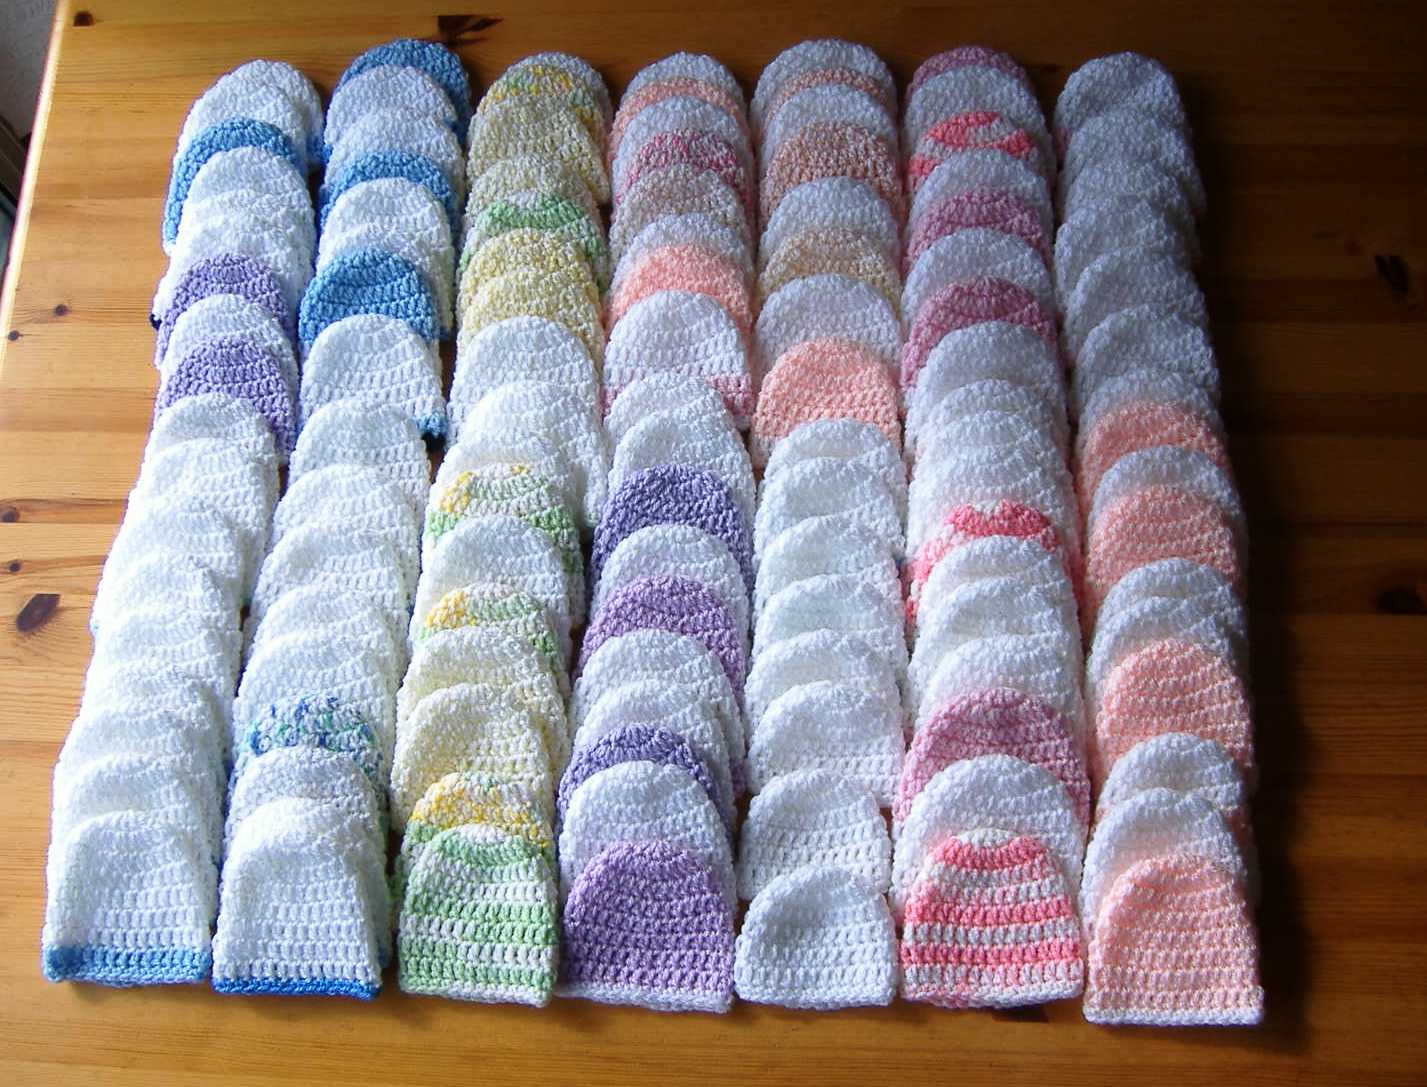 Knitting Or Crocheting For Charity : Marianna s lazy daisy days loving hands